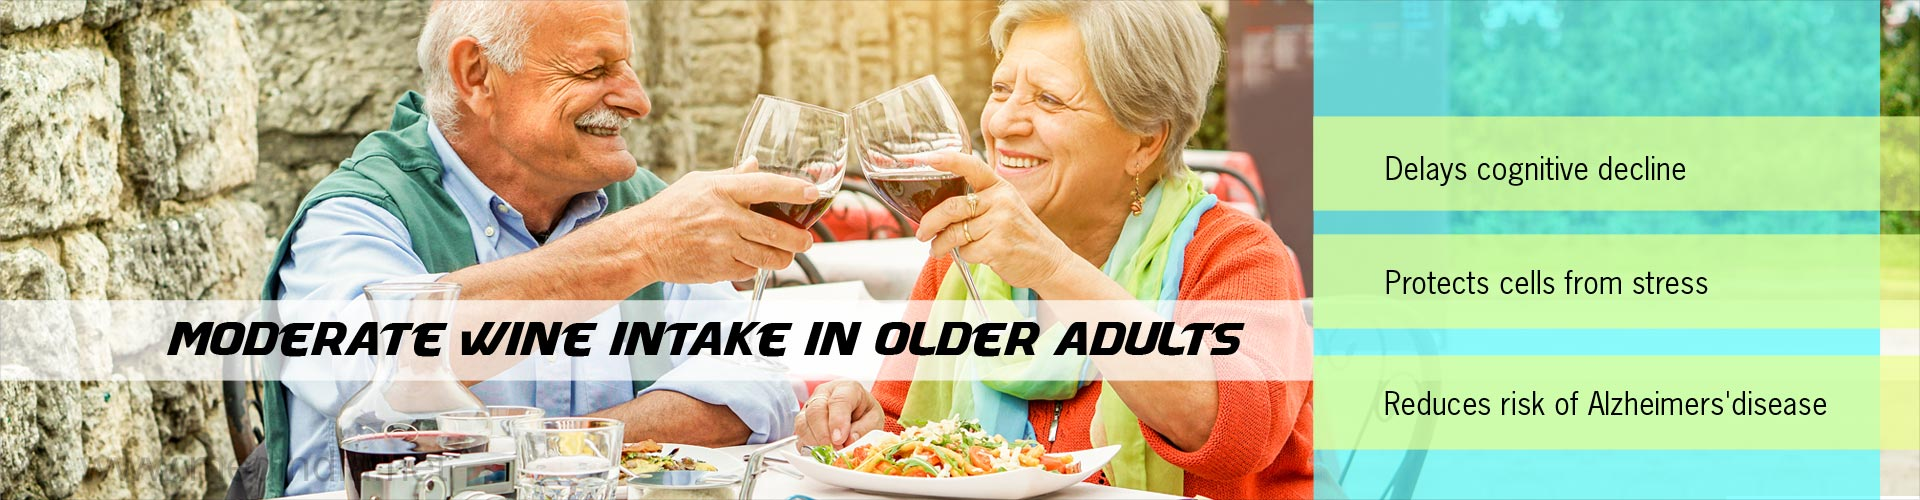 moderate wine intake in older adults